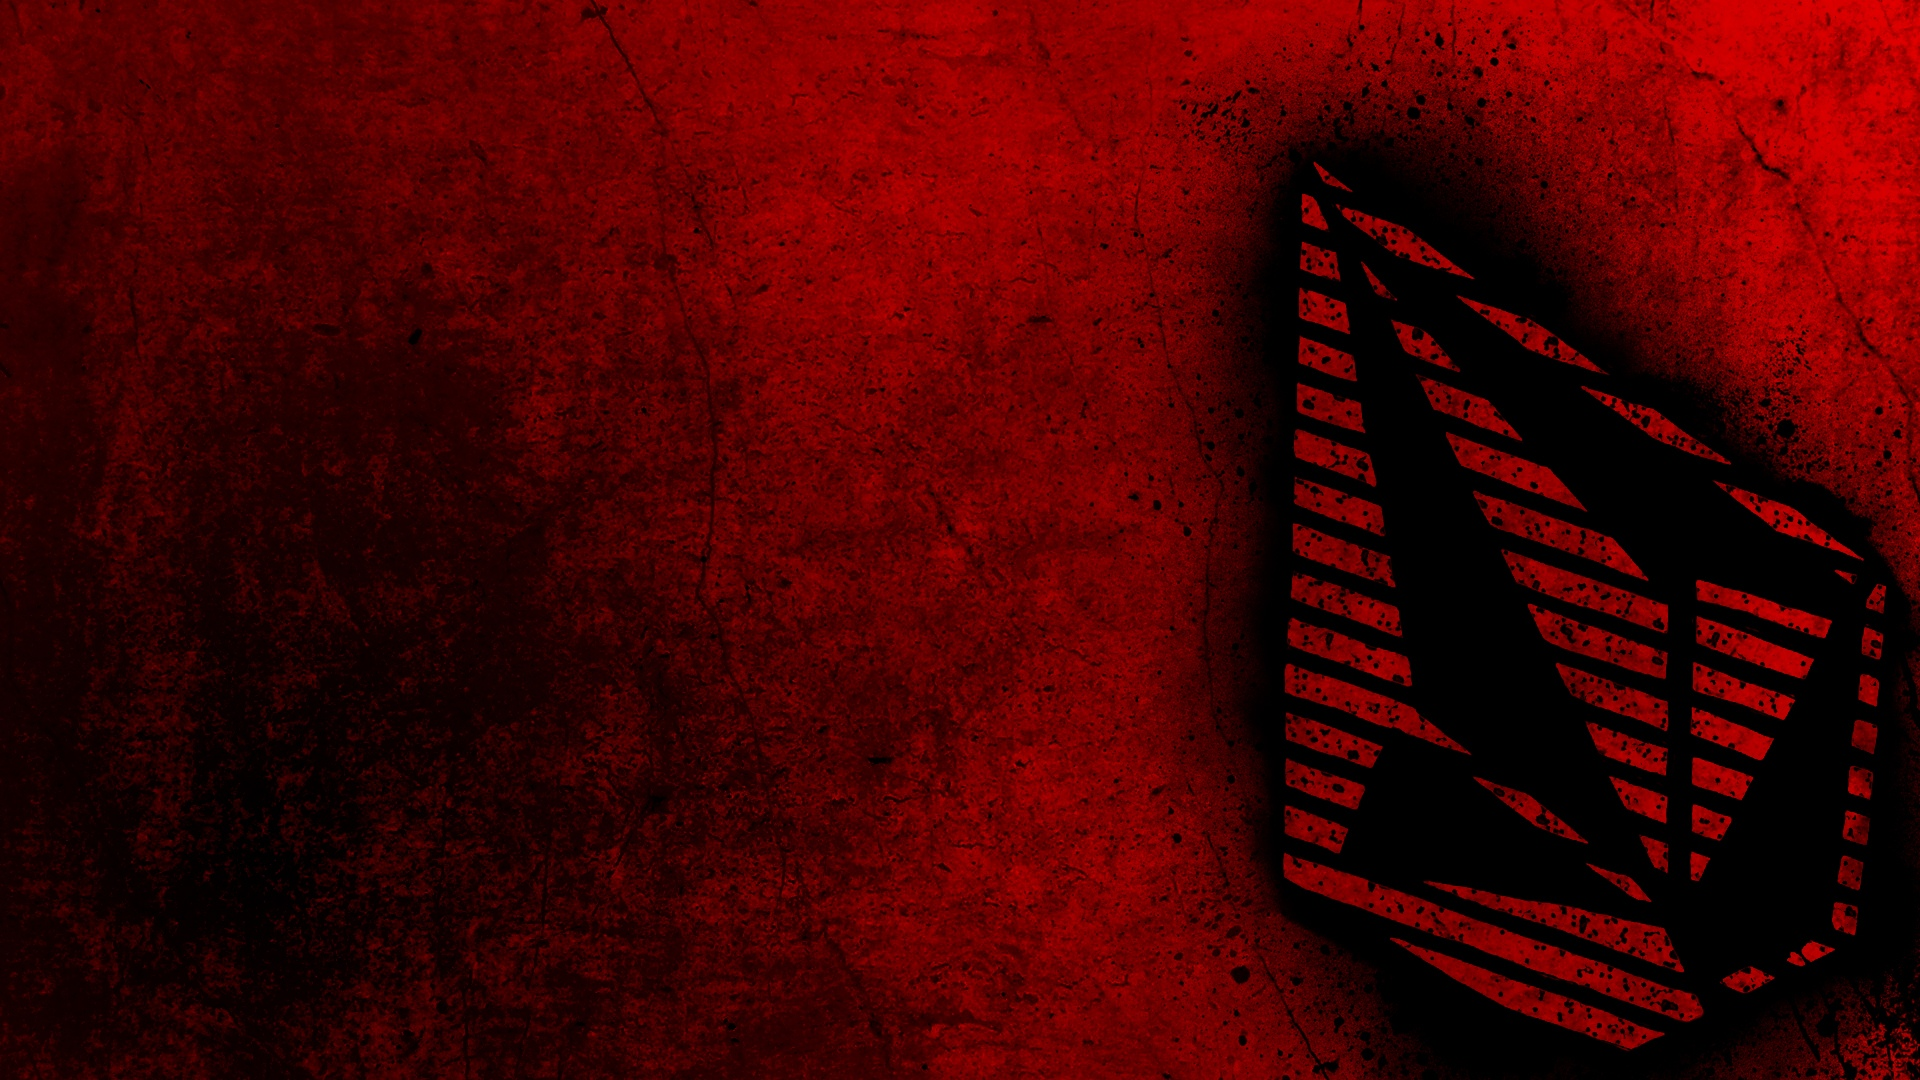 1920x1080 - Volcom Backgrounds 47